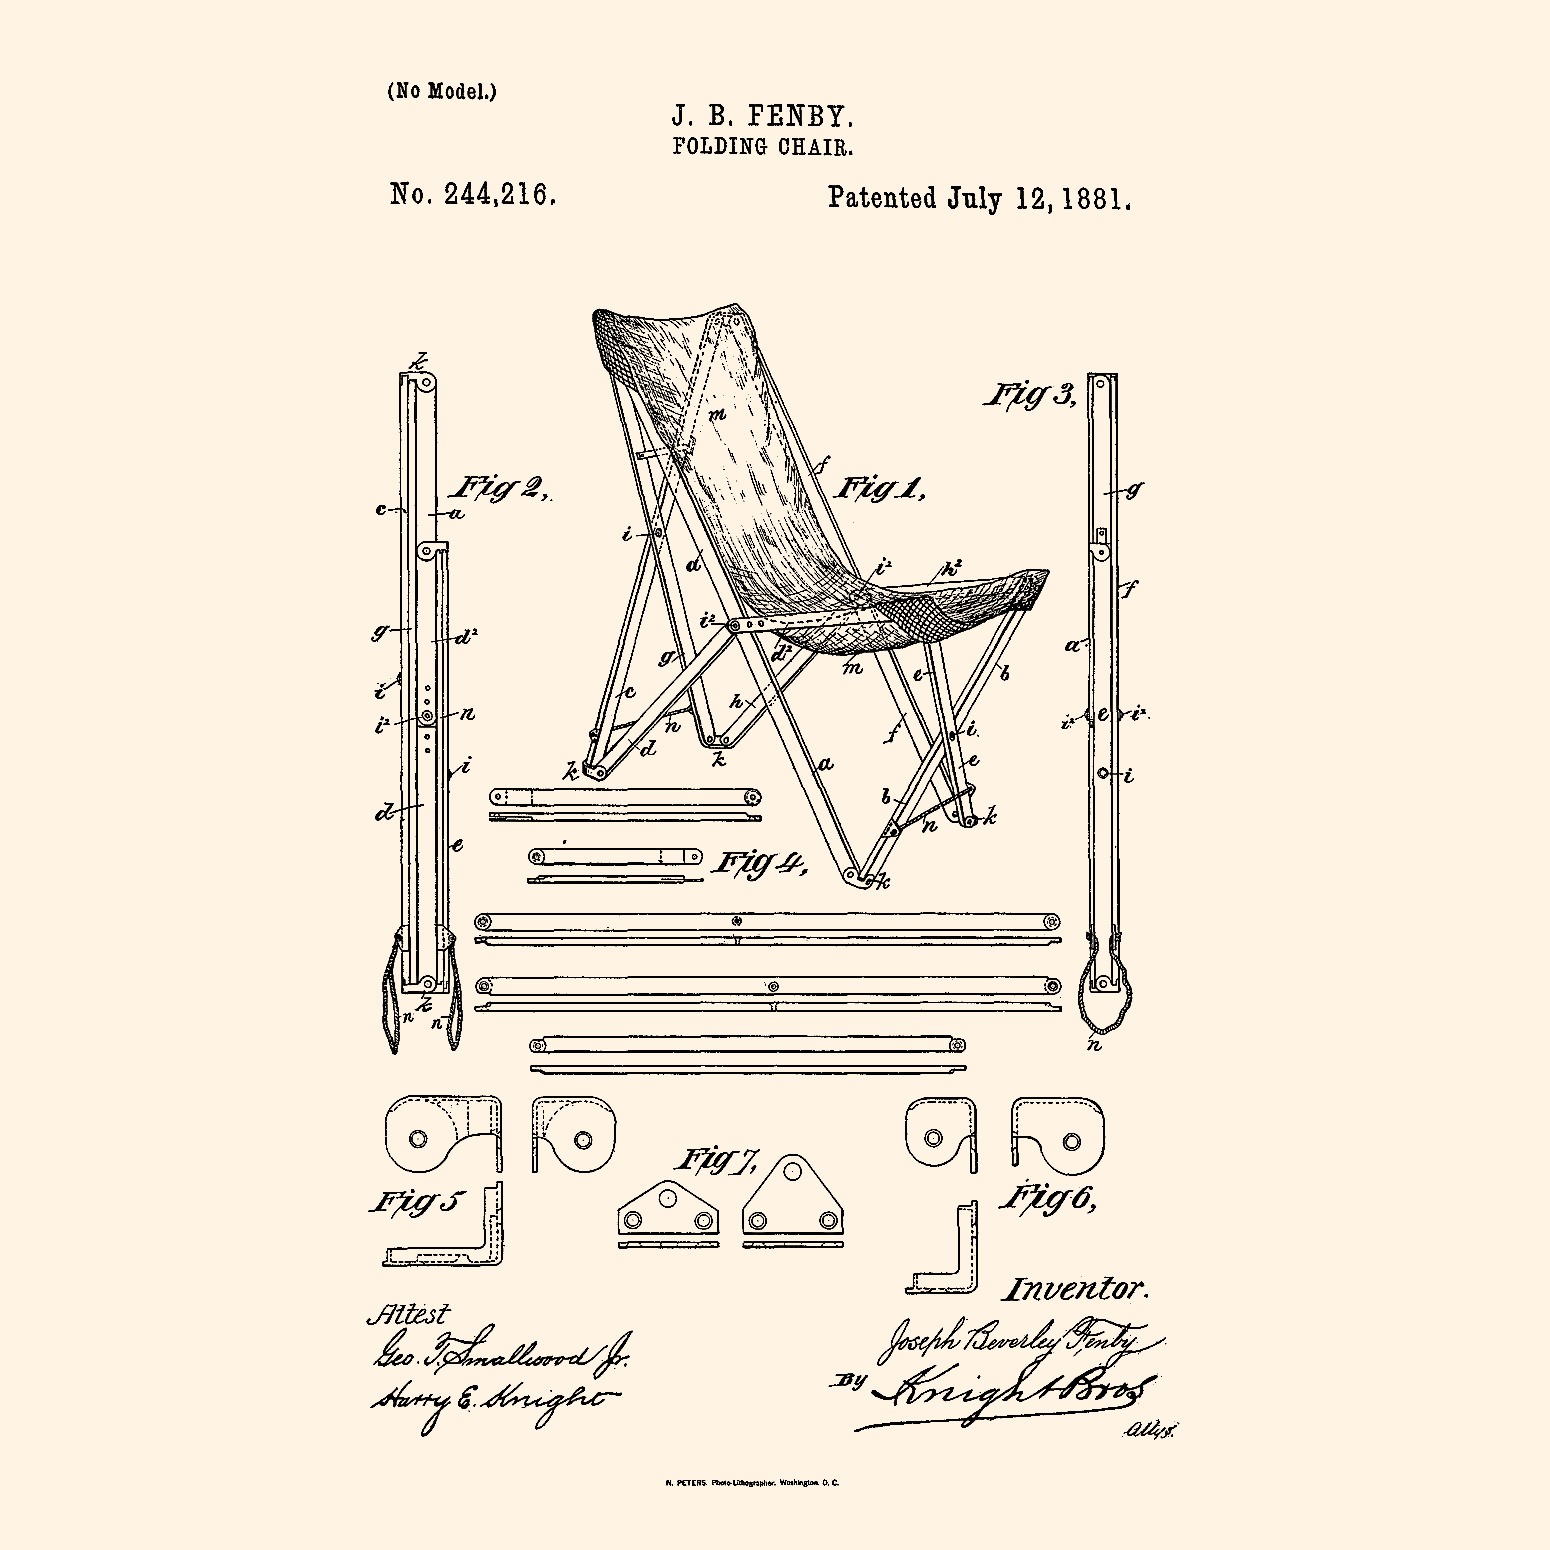 US Patent For J. B. Fenbyu0027s Folding Chair